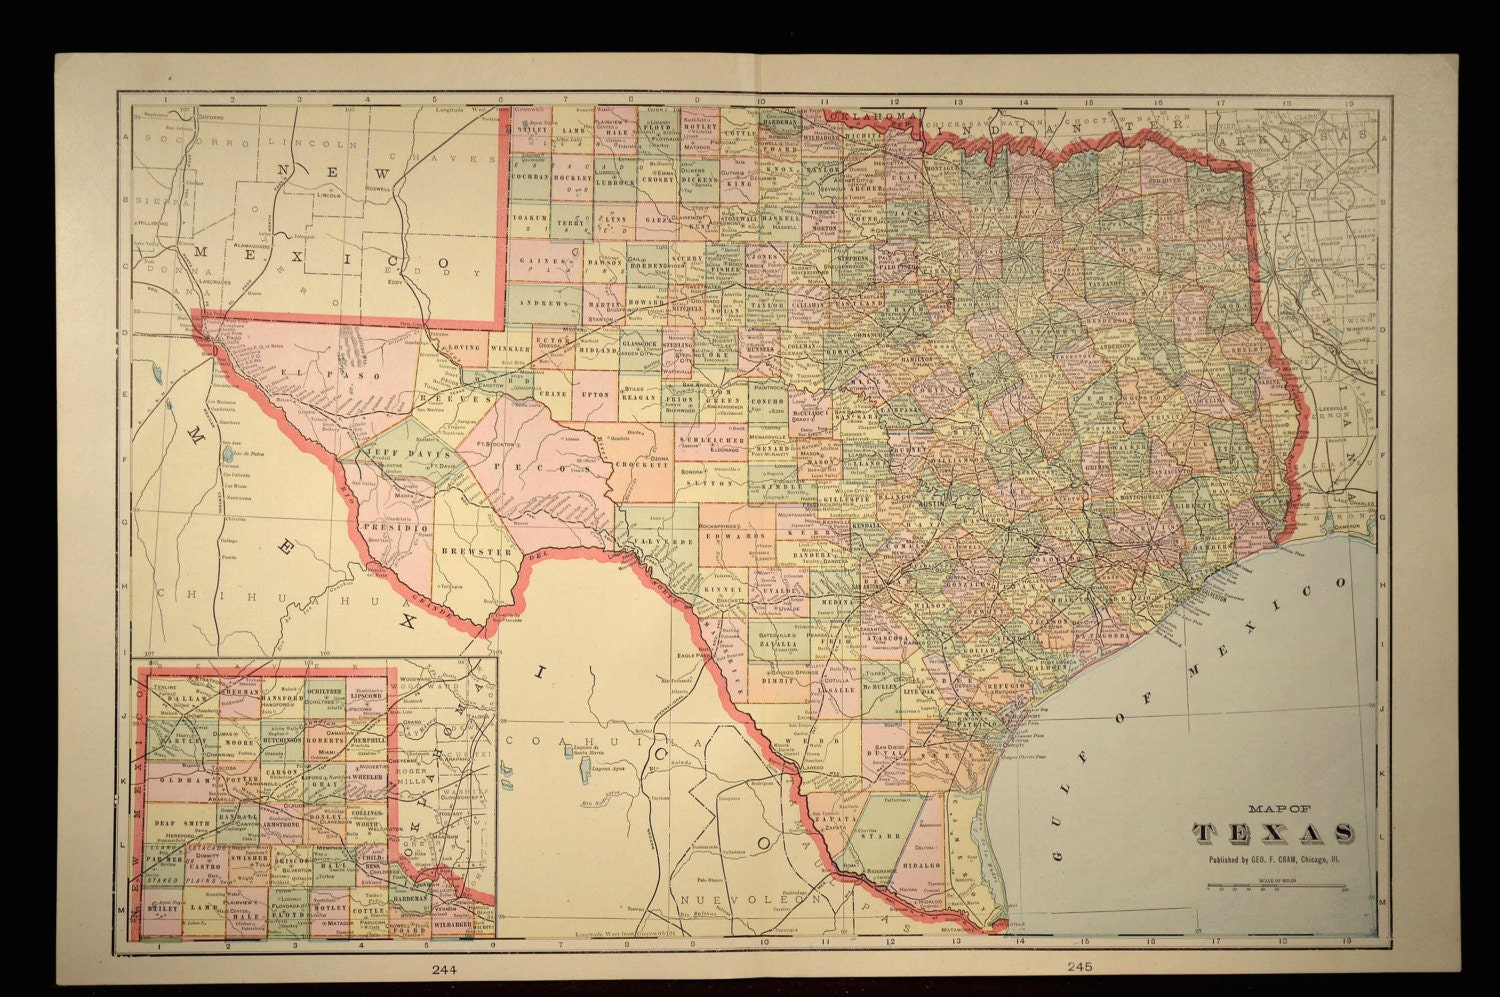 Buy Old Austin Texas Map Vintage Historical Map Antique: Texas Map Texas Antique LARGE Early 1900s By MapsBooksEphemera